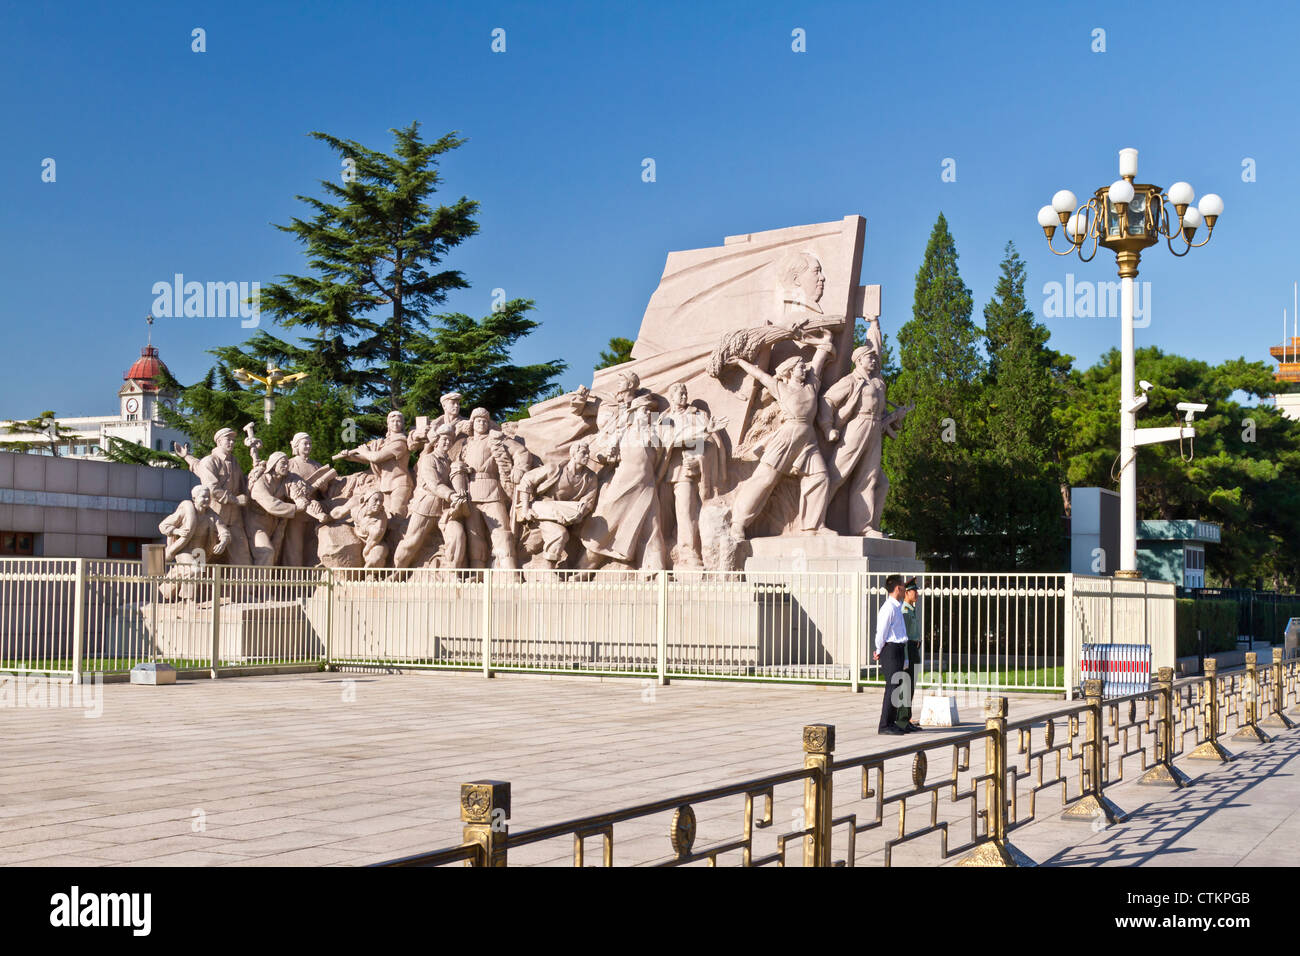 The People's Monument on Tiananmen Square, Beijing, China. - Stock Image